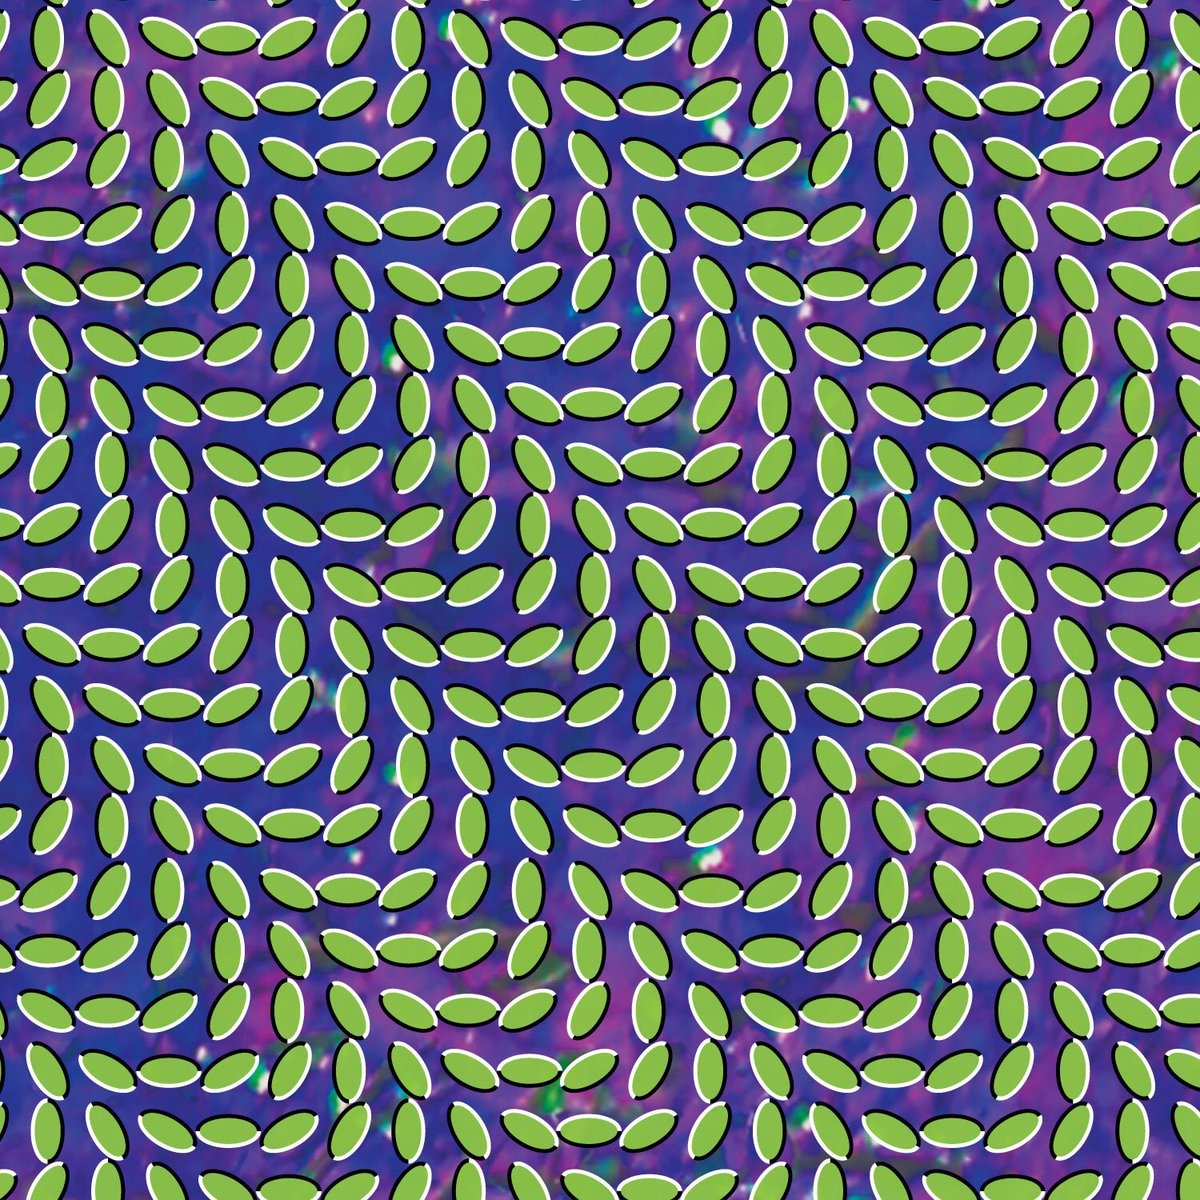 RT @anmlcollective: Today marks the 9th anniversary of Merriweather Post Pavilion  https://t.co/Zt4zh9HGFY https://t.co/uaDiIeGbax